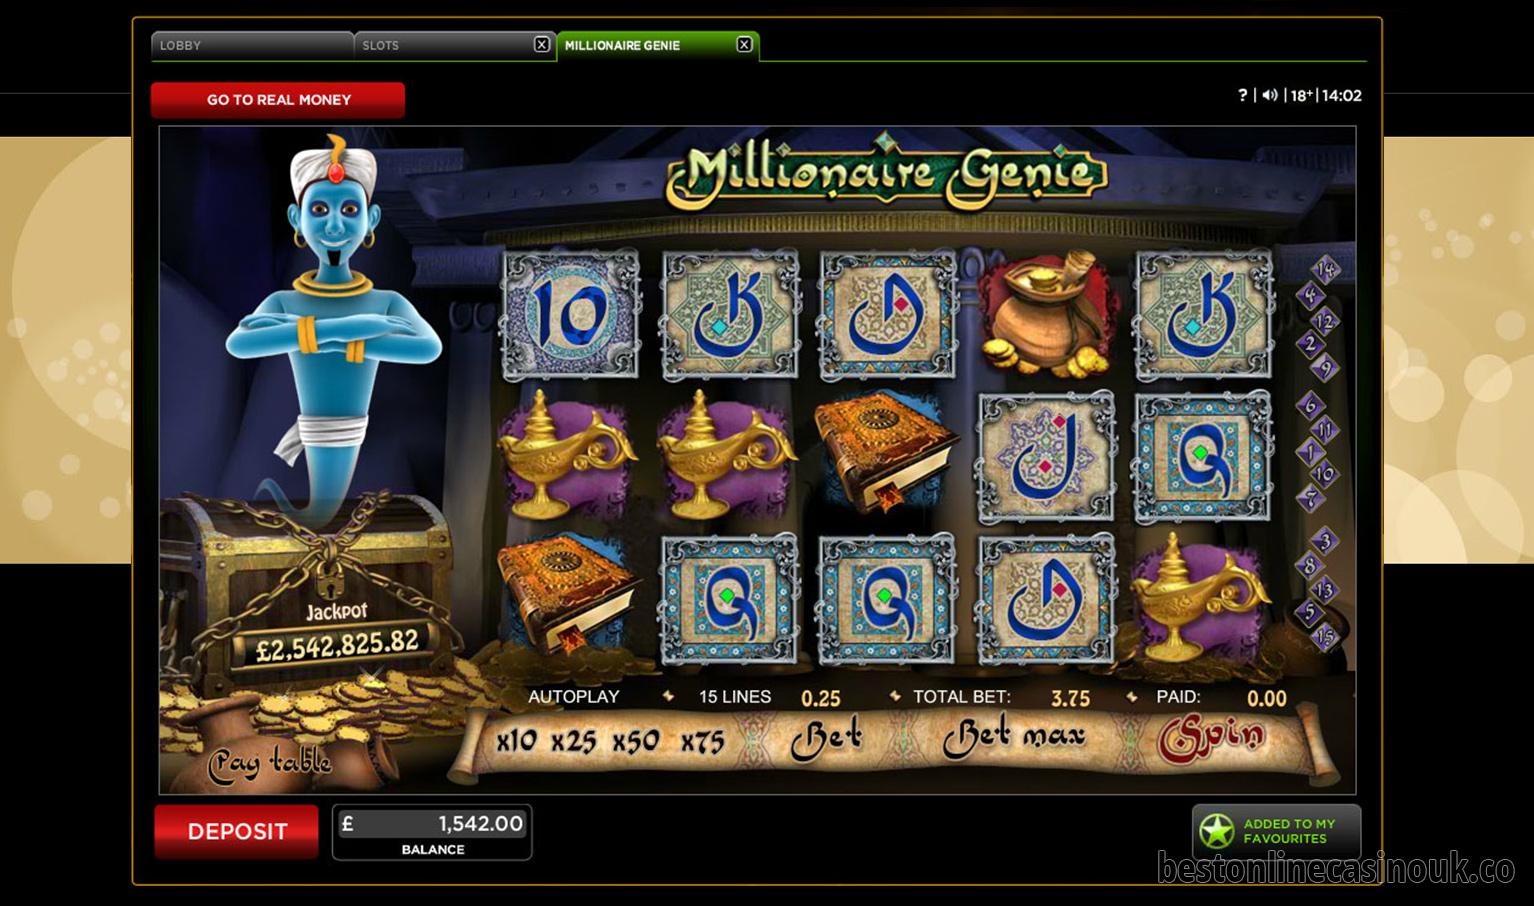 Online Casino Games FAQs